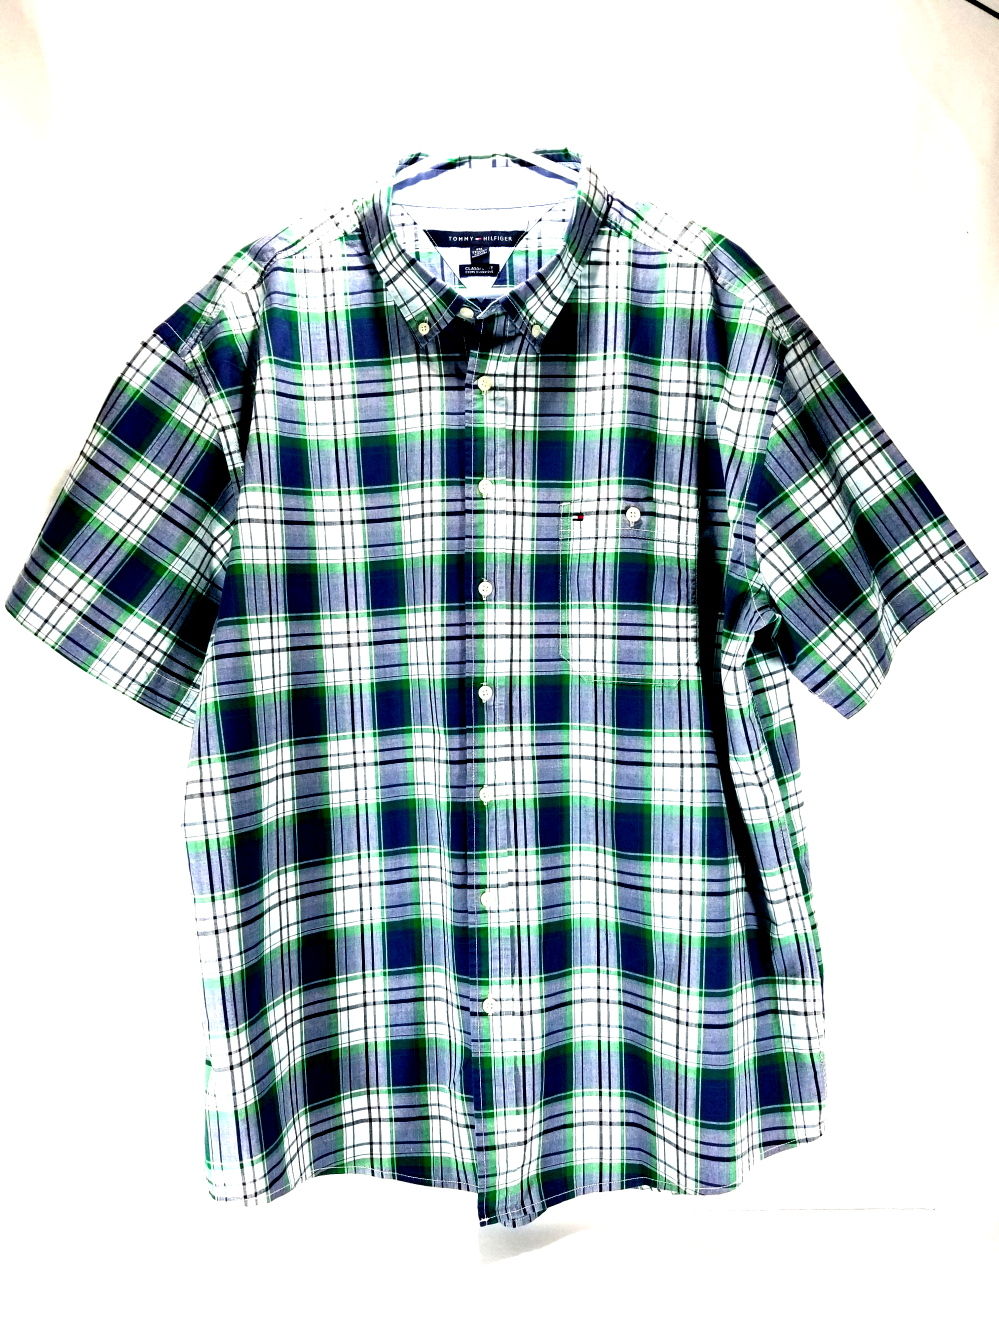 TOMMY HILFIGER 100% COTTON CLASSIC FIT BUTTON FRONT SHORT SLEEVE SHIRT BLUE XXL Clothing, Shoes & Accessories Shirts